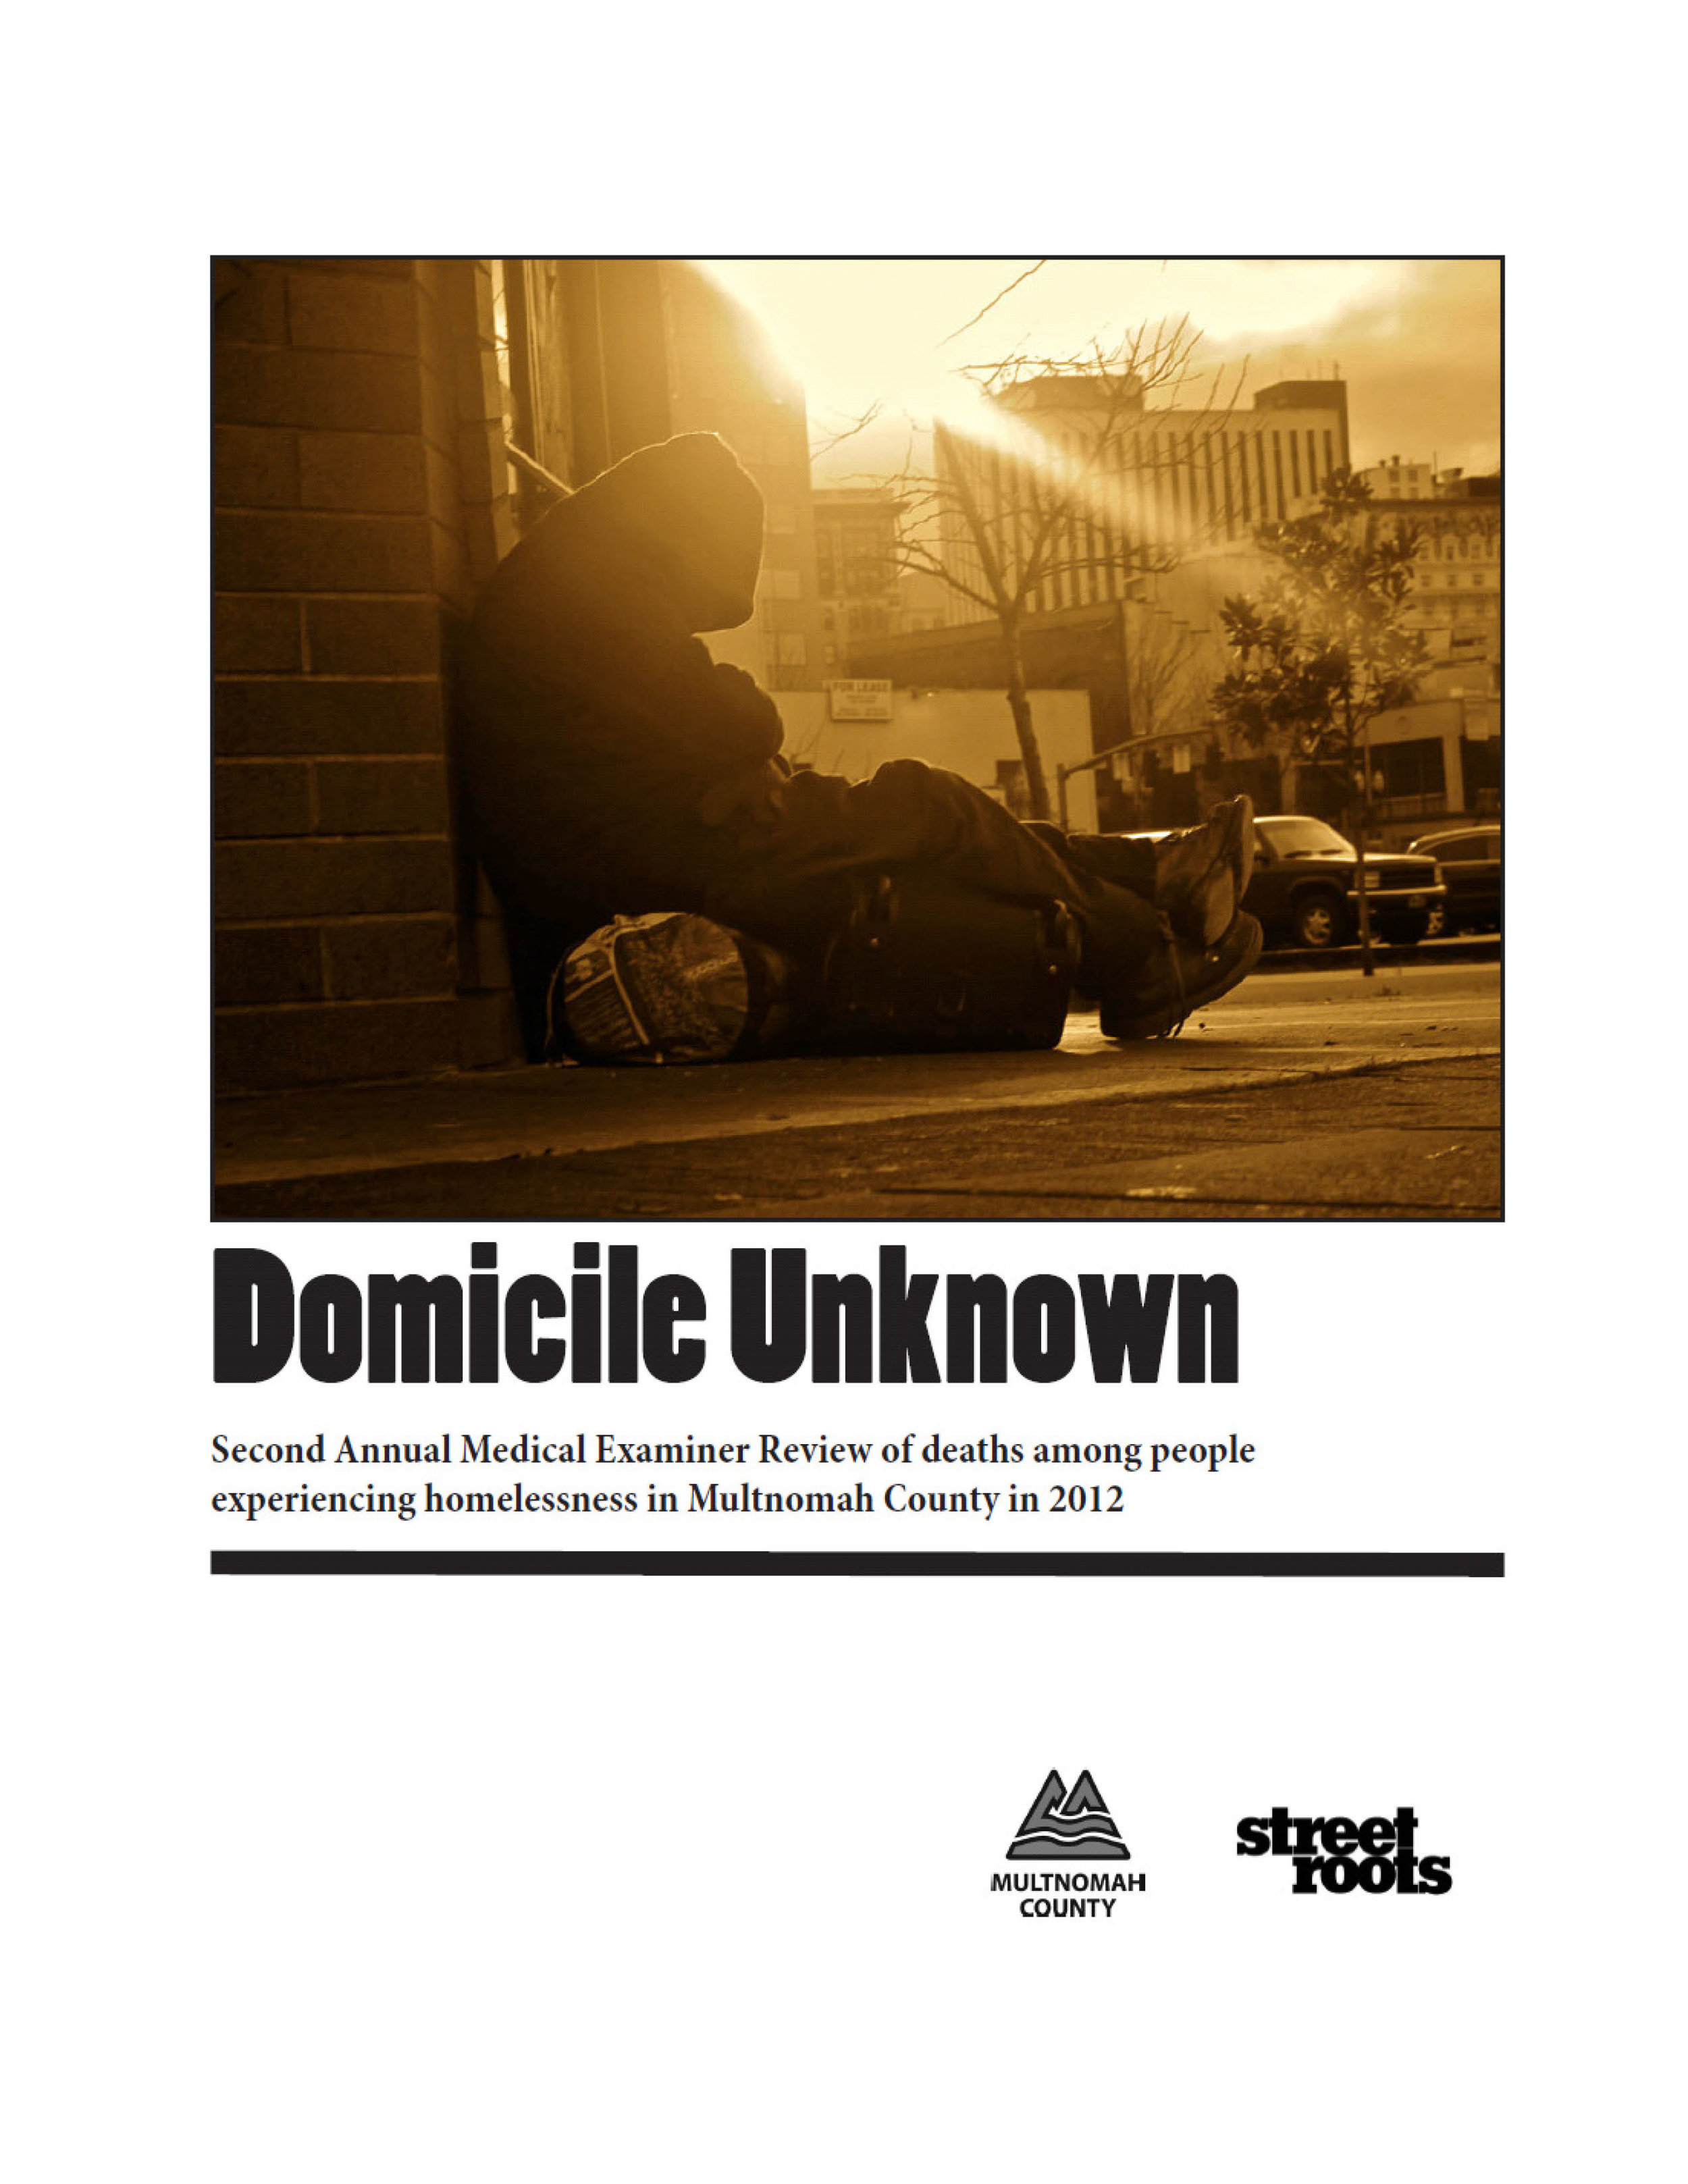 2012 Domicile Unknown Report